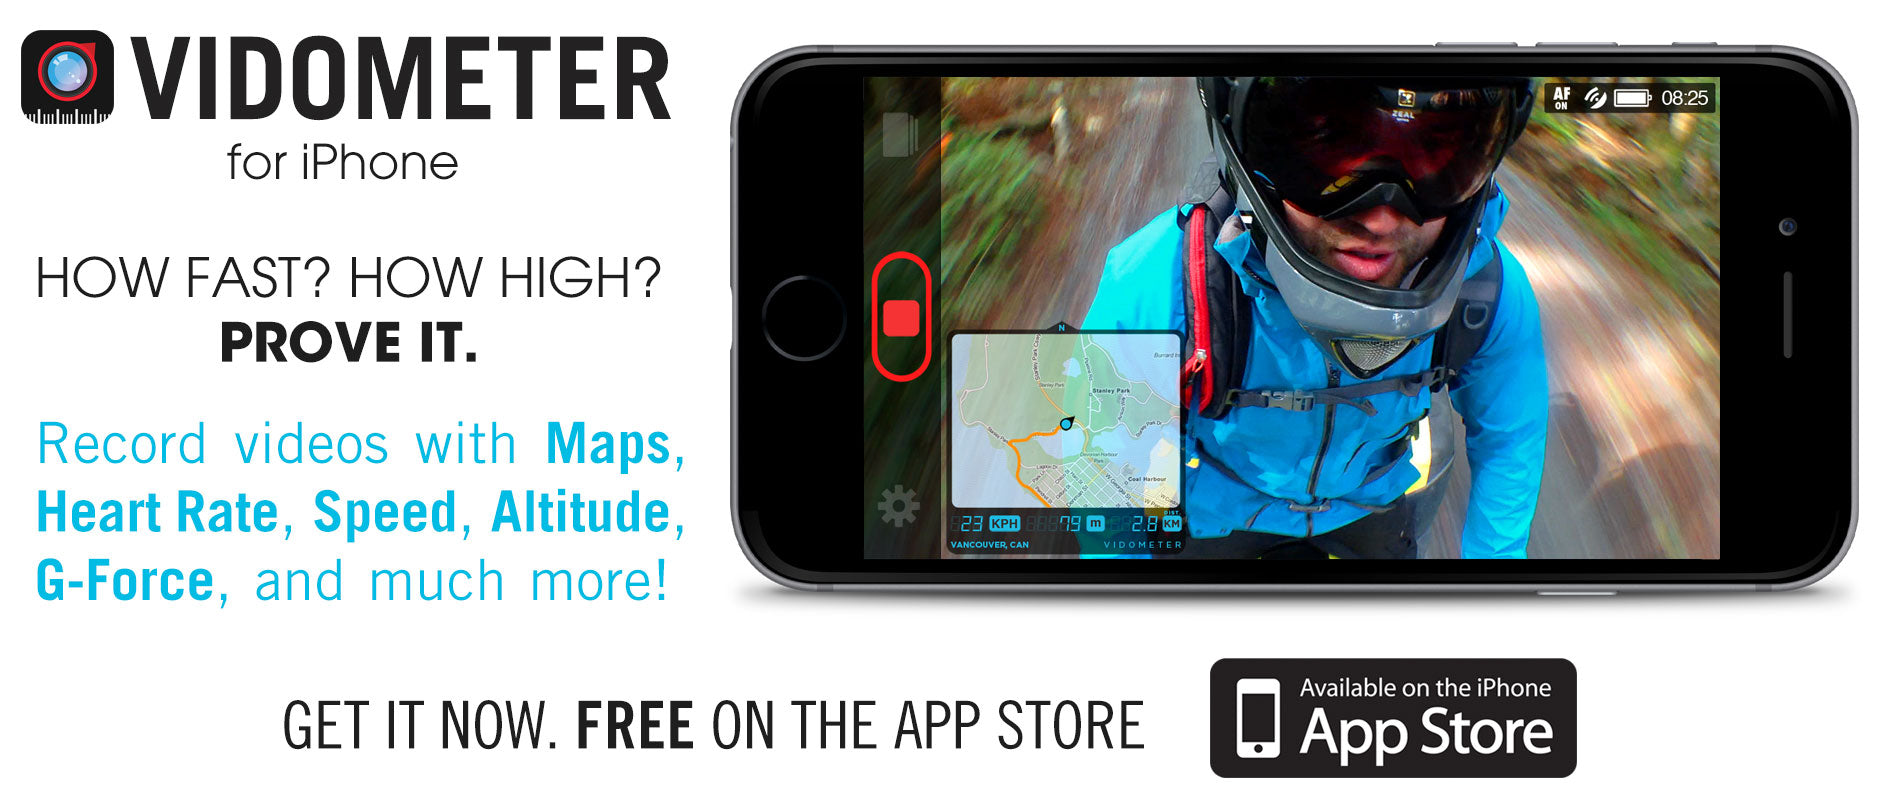 Vidometer App for iPhone. Overlay Maps, Heart Rate, Speed, Altitude, G-Force, Compass, and more onto your videos in real time